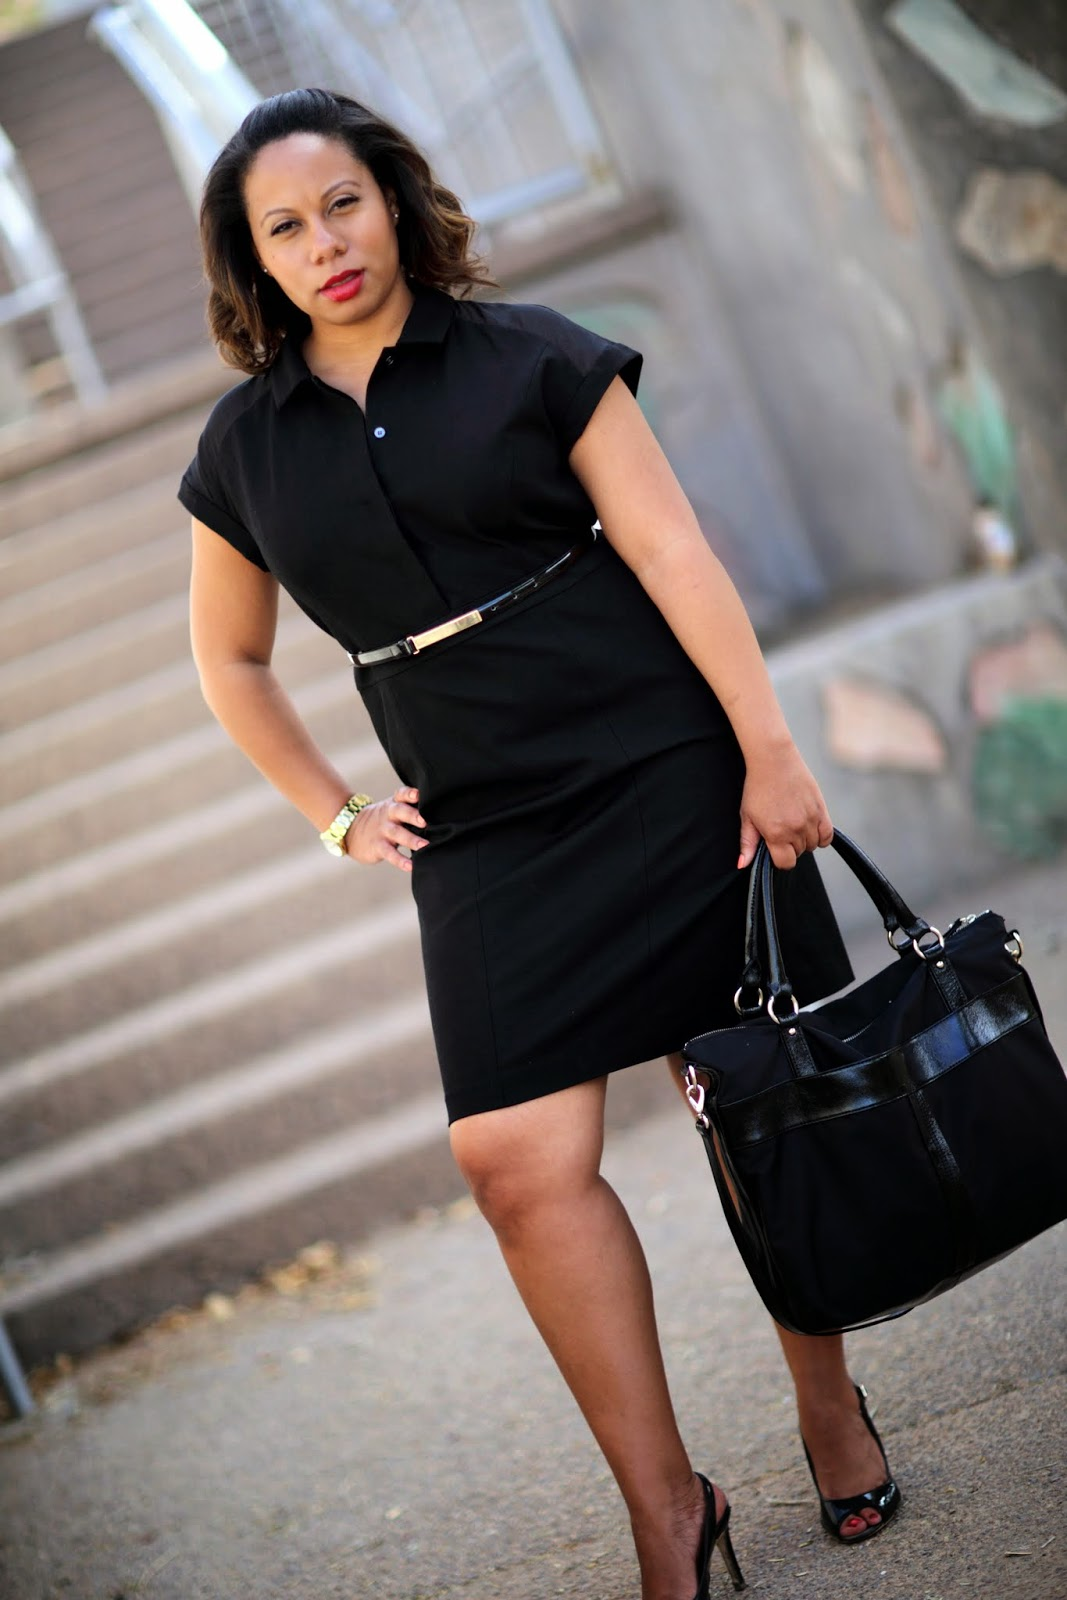 http://www.petitecareergirl.com/2014/05/a-little-black-shirt-dress.html